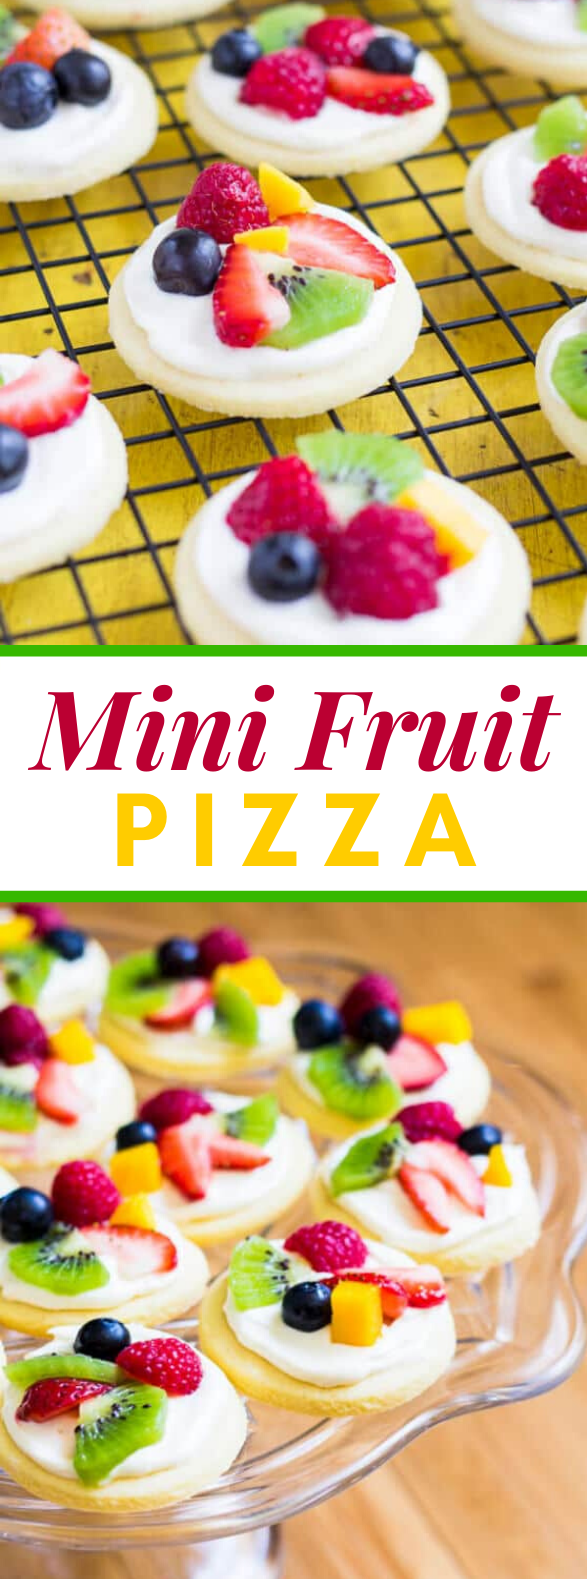 Mini Fruit Pizzas #desserts #cookies